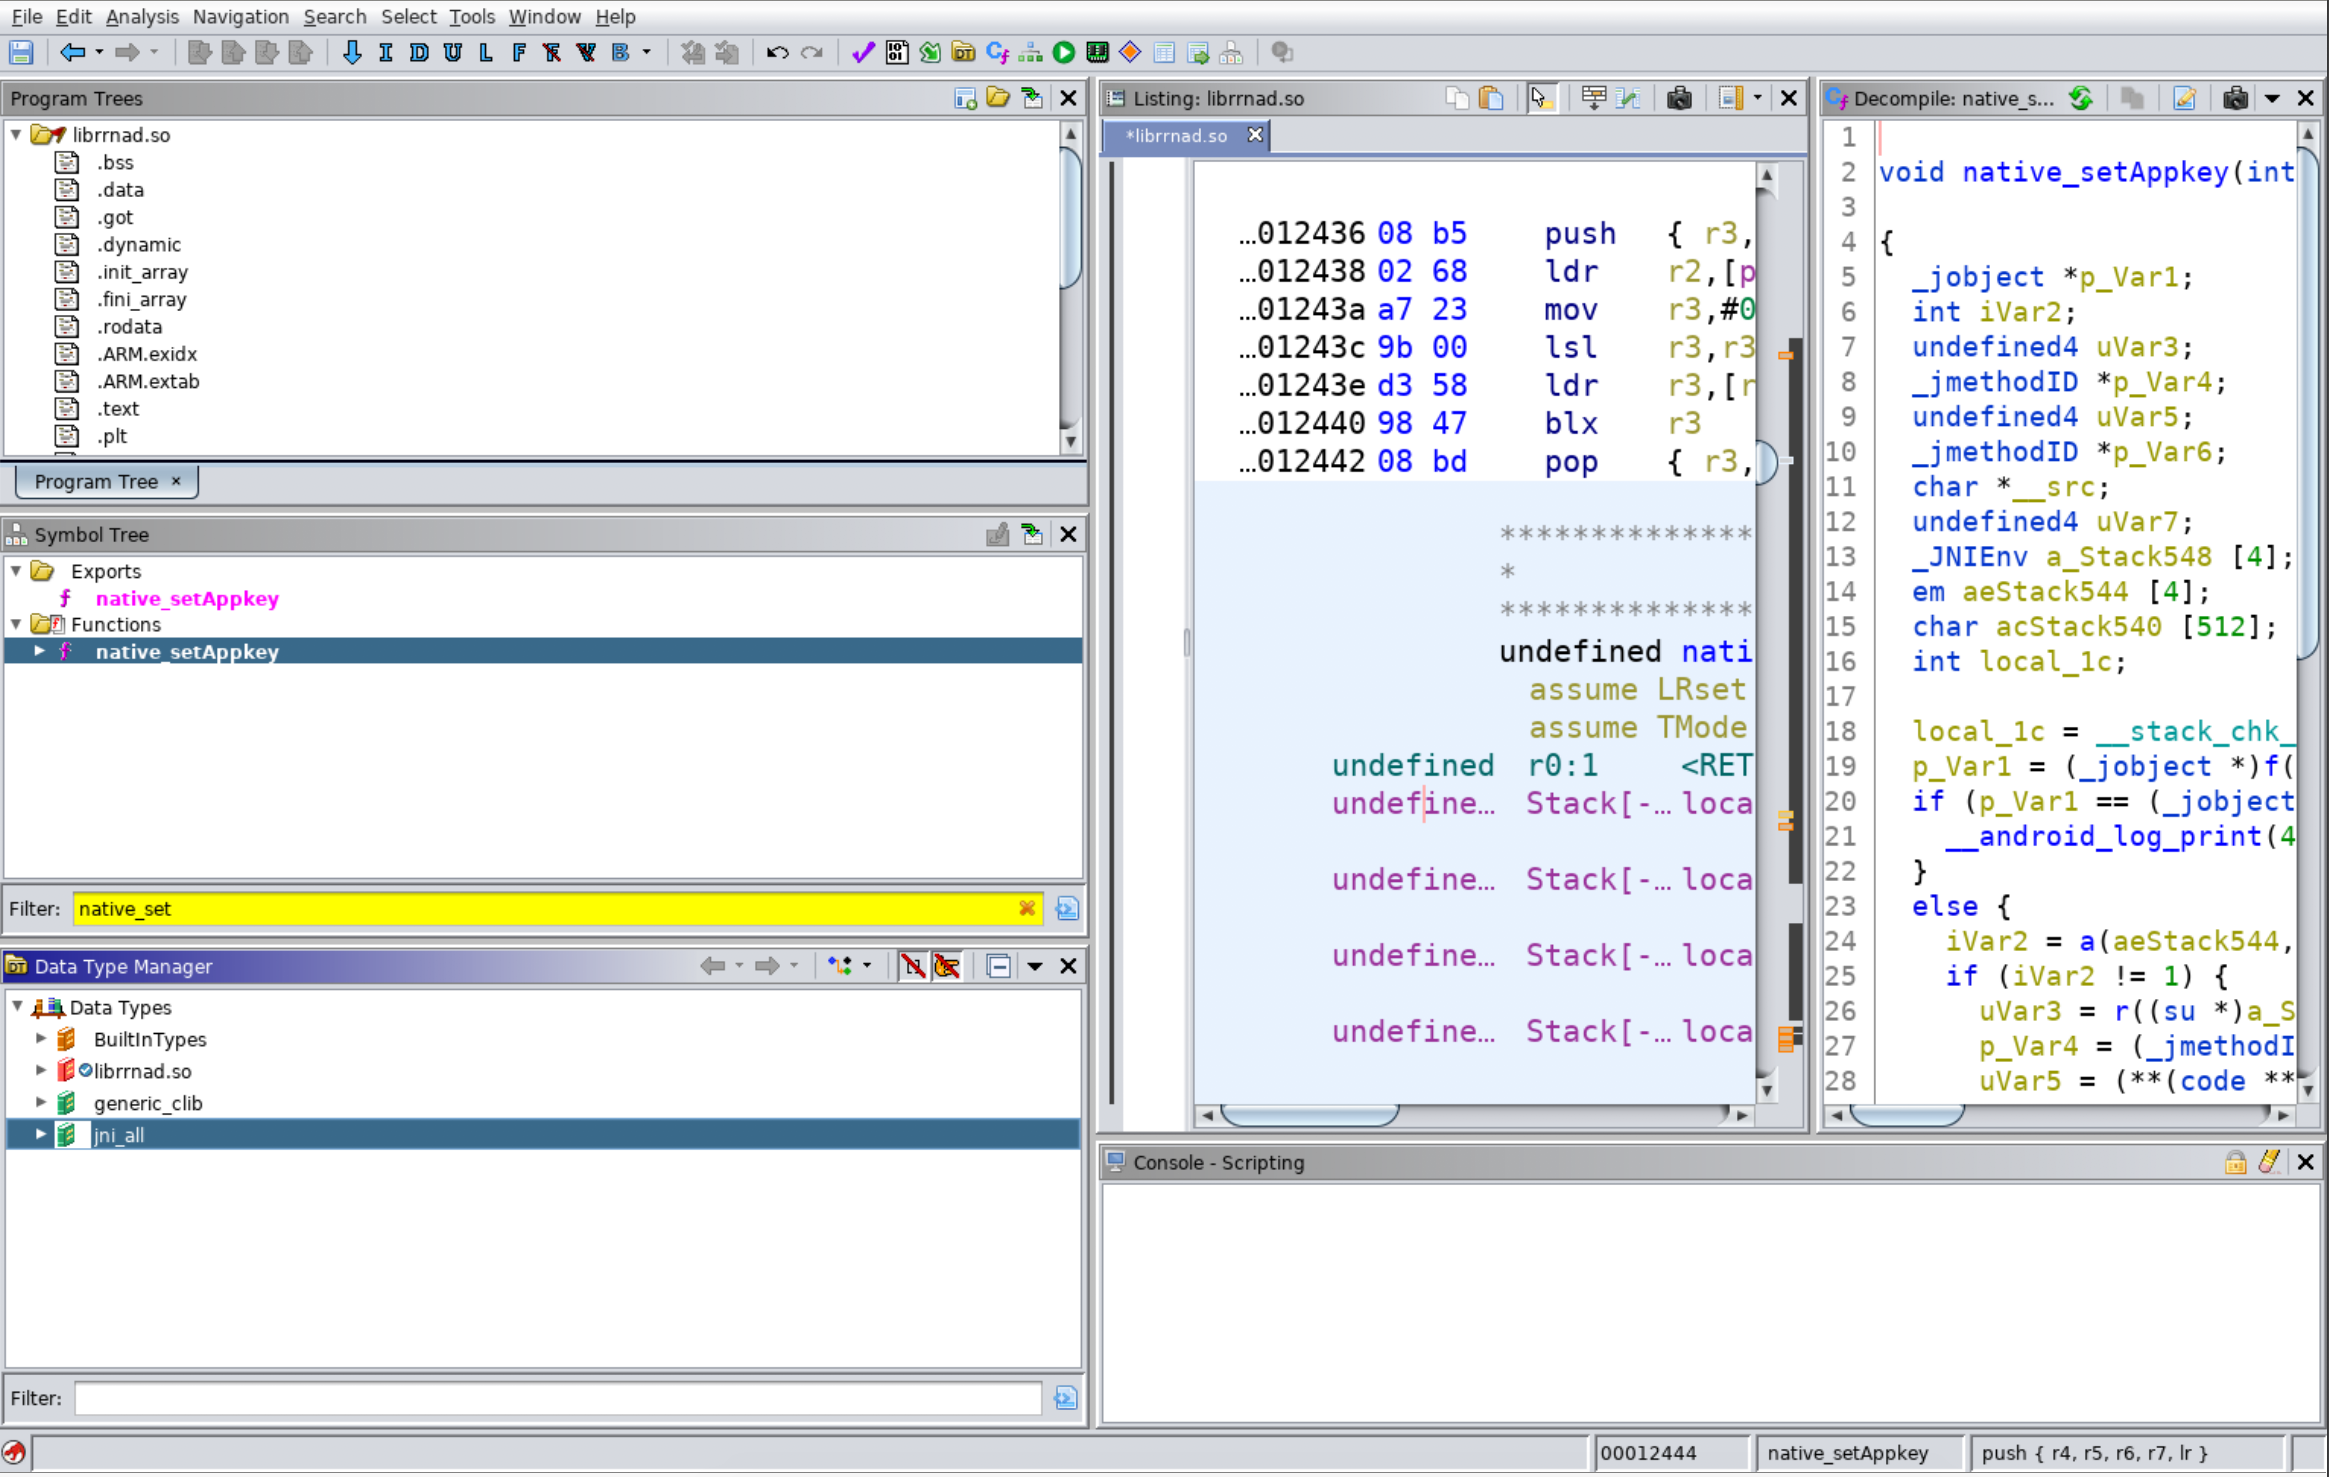 Screenshot of jni_all Loaded in Data Type Manager